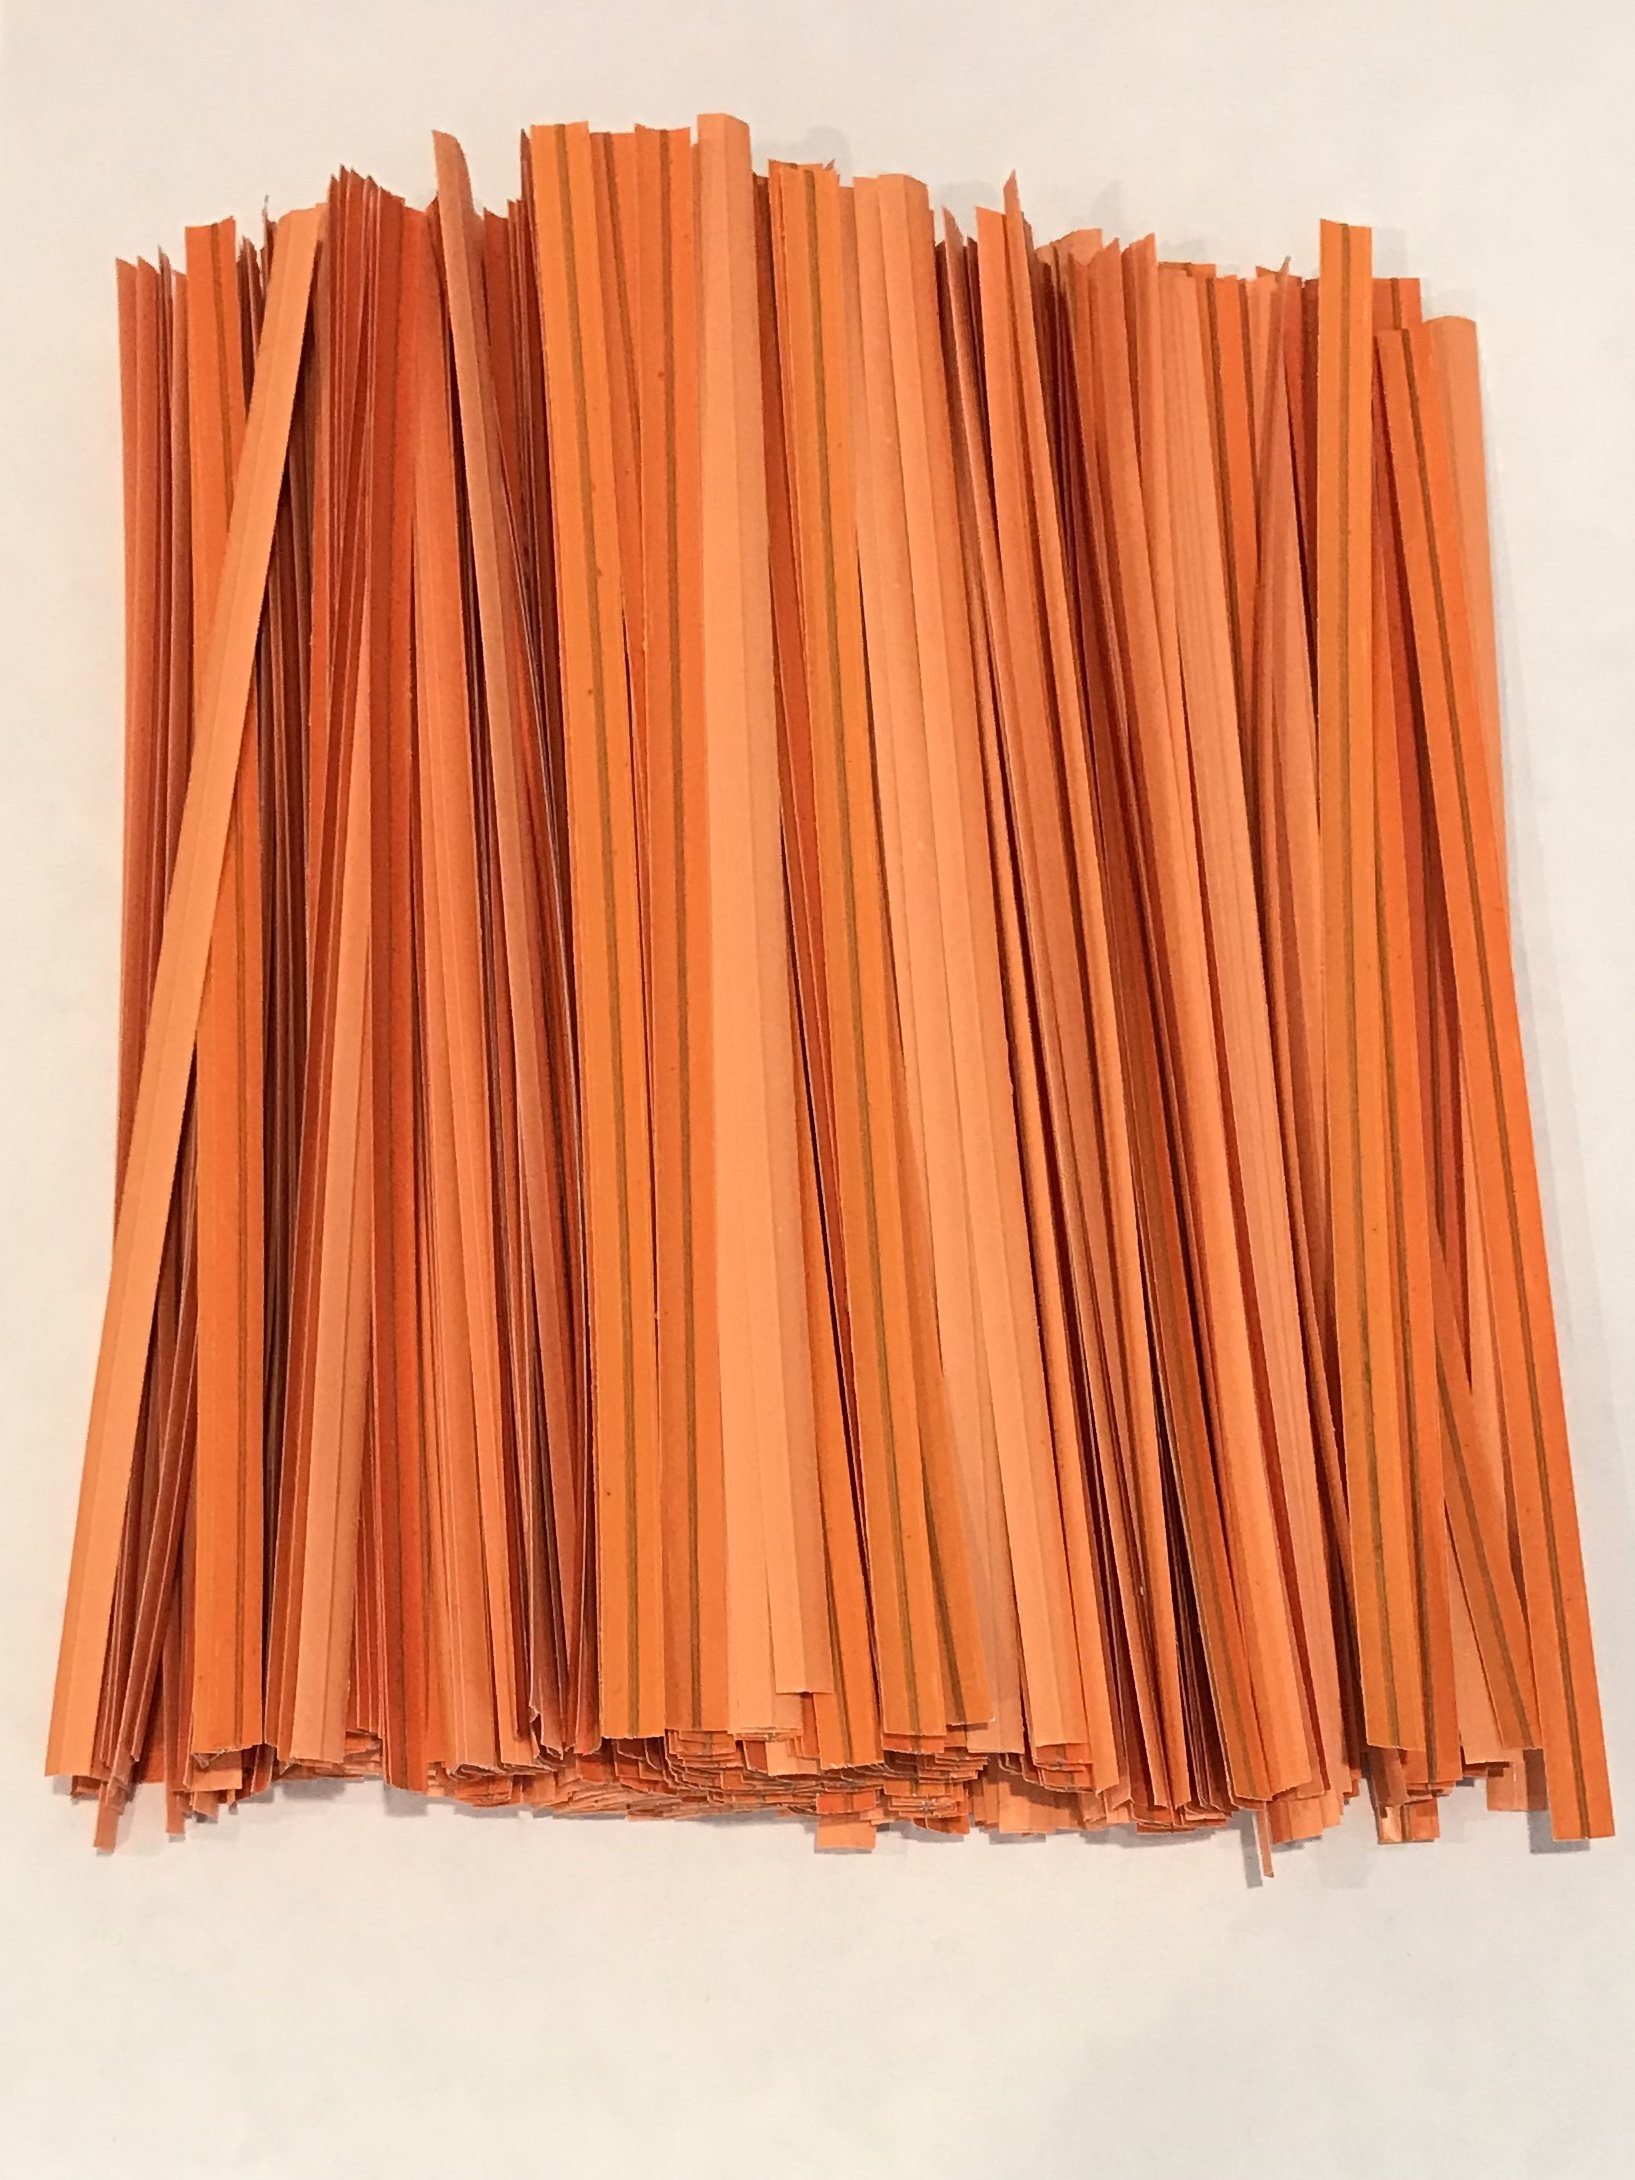 2000 Twist Ties 7'' Length Plastic Coated Pater No Rip Cellophane Assorted Colors (Orange)